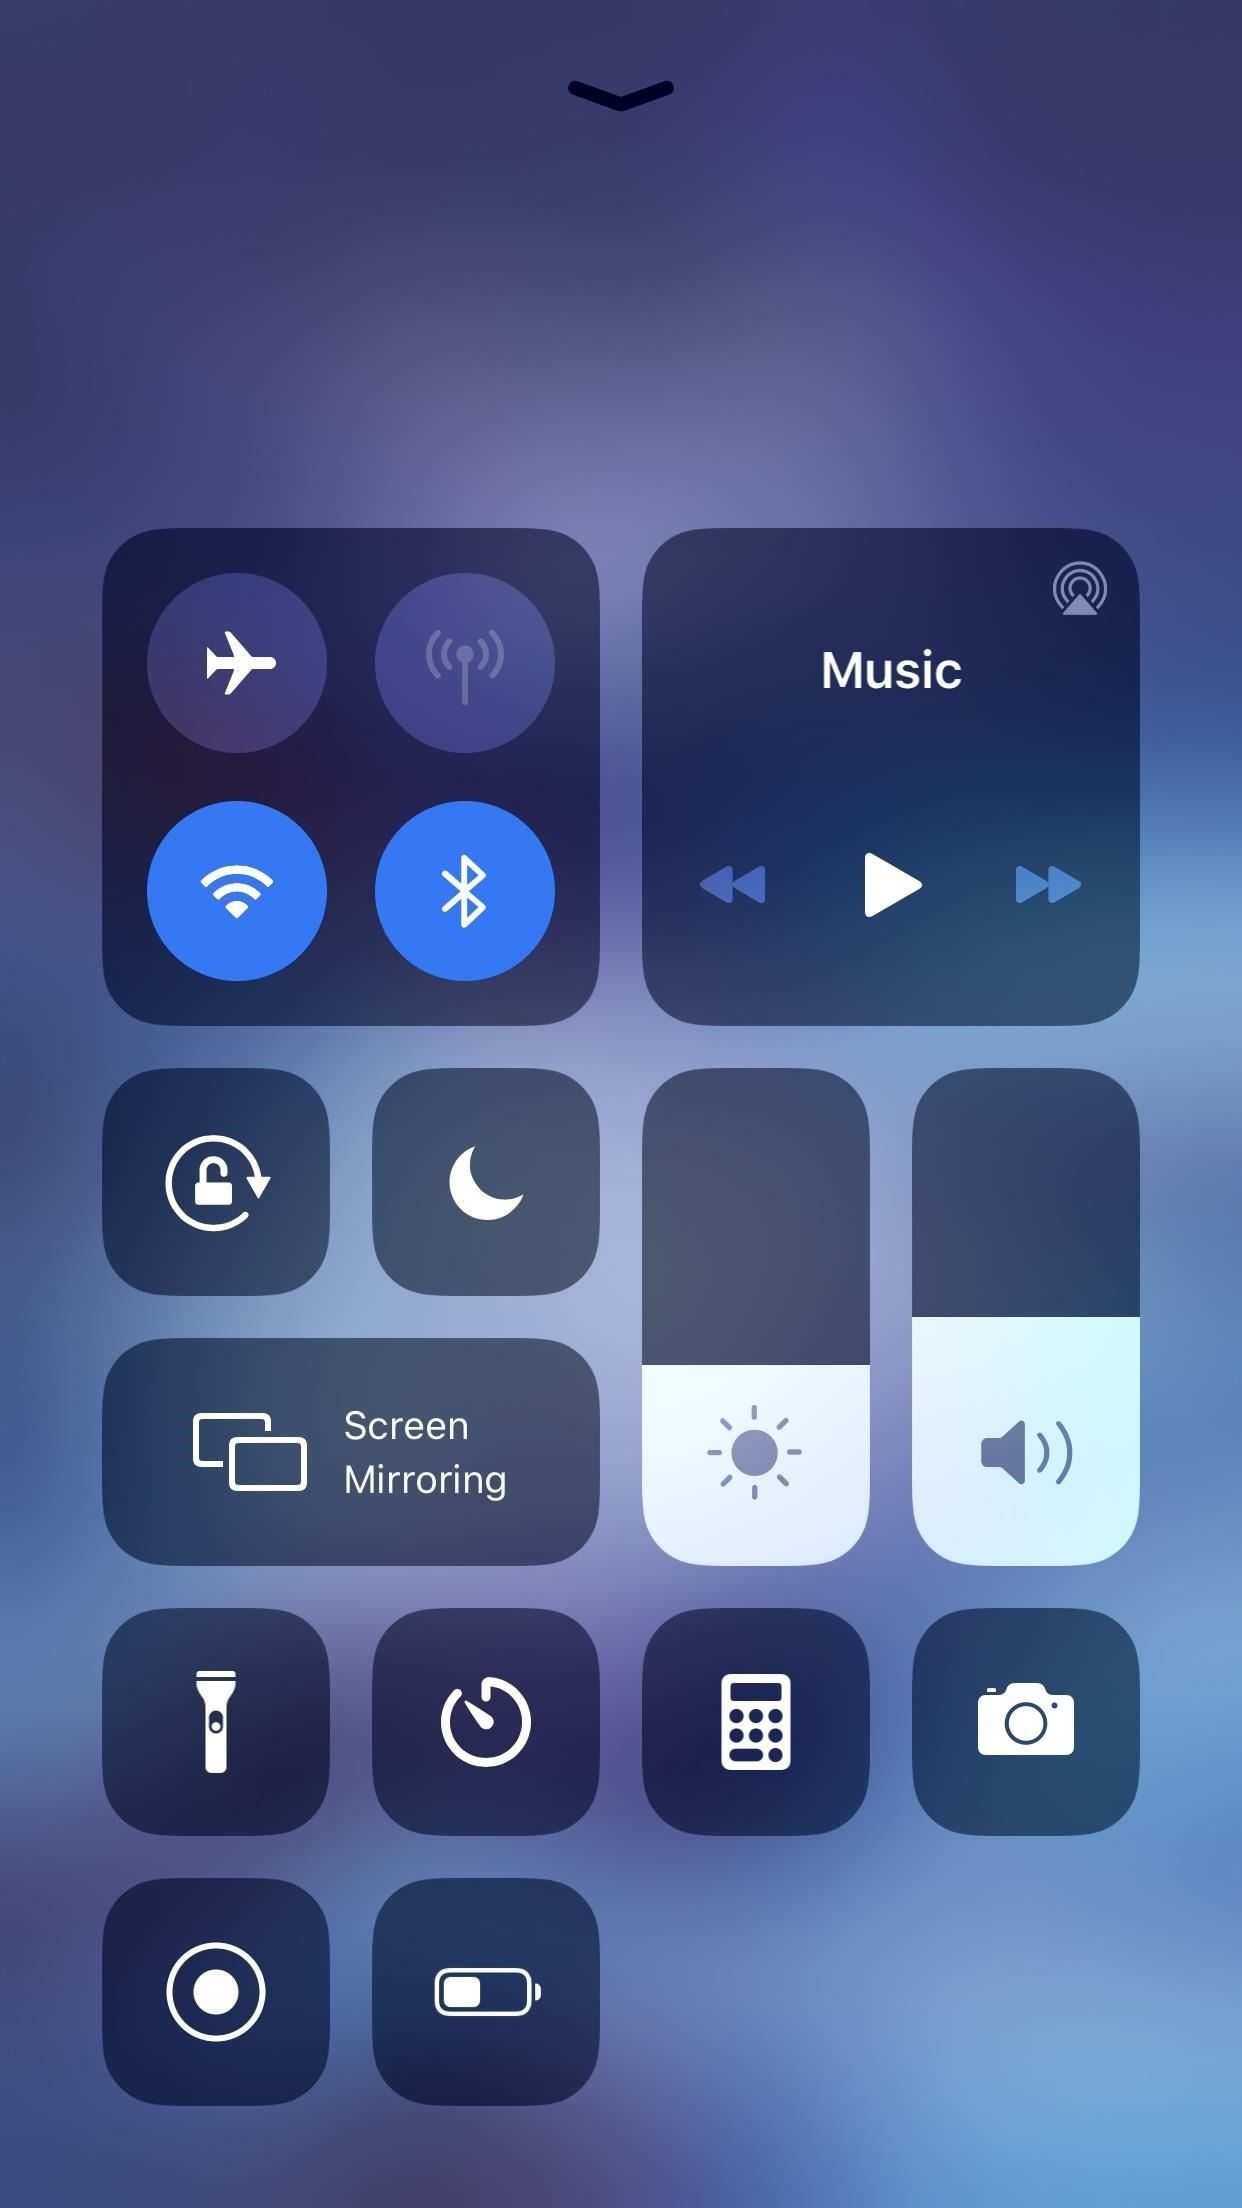 24 New functions and changes for iPhone in iOS 13.4